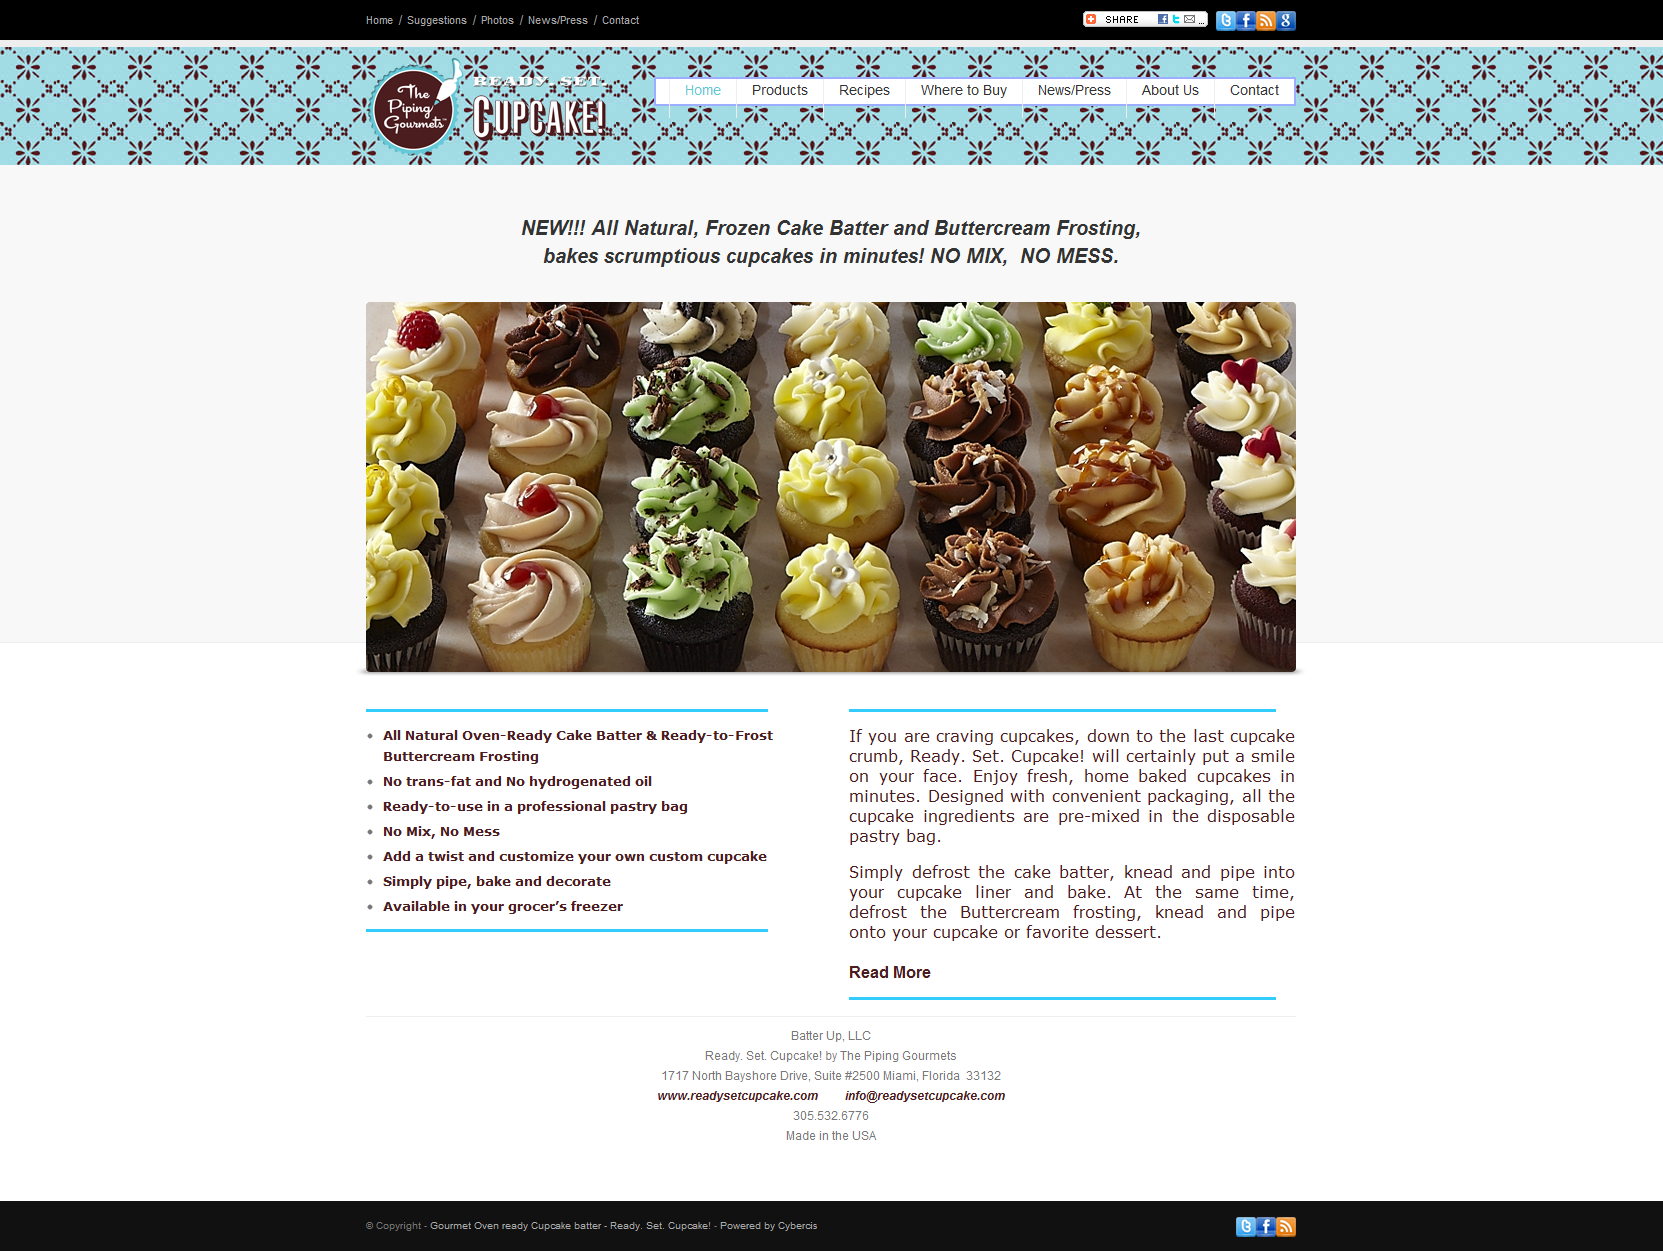 Gourmet-Natural-home-baked-cupcakes-in-minutes